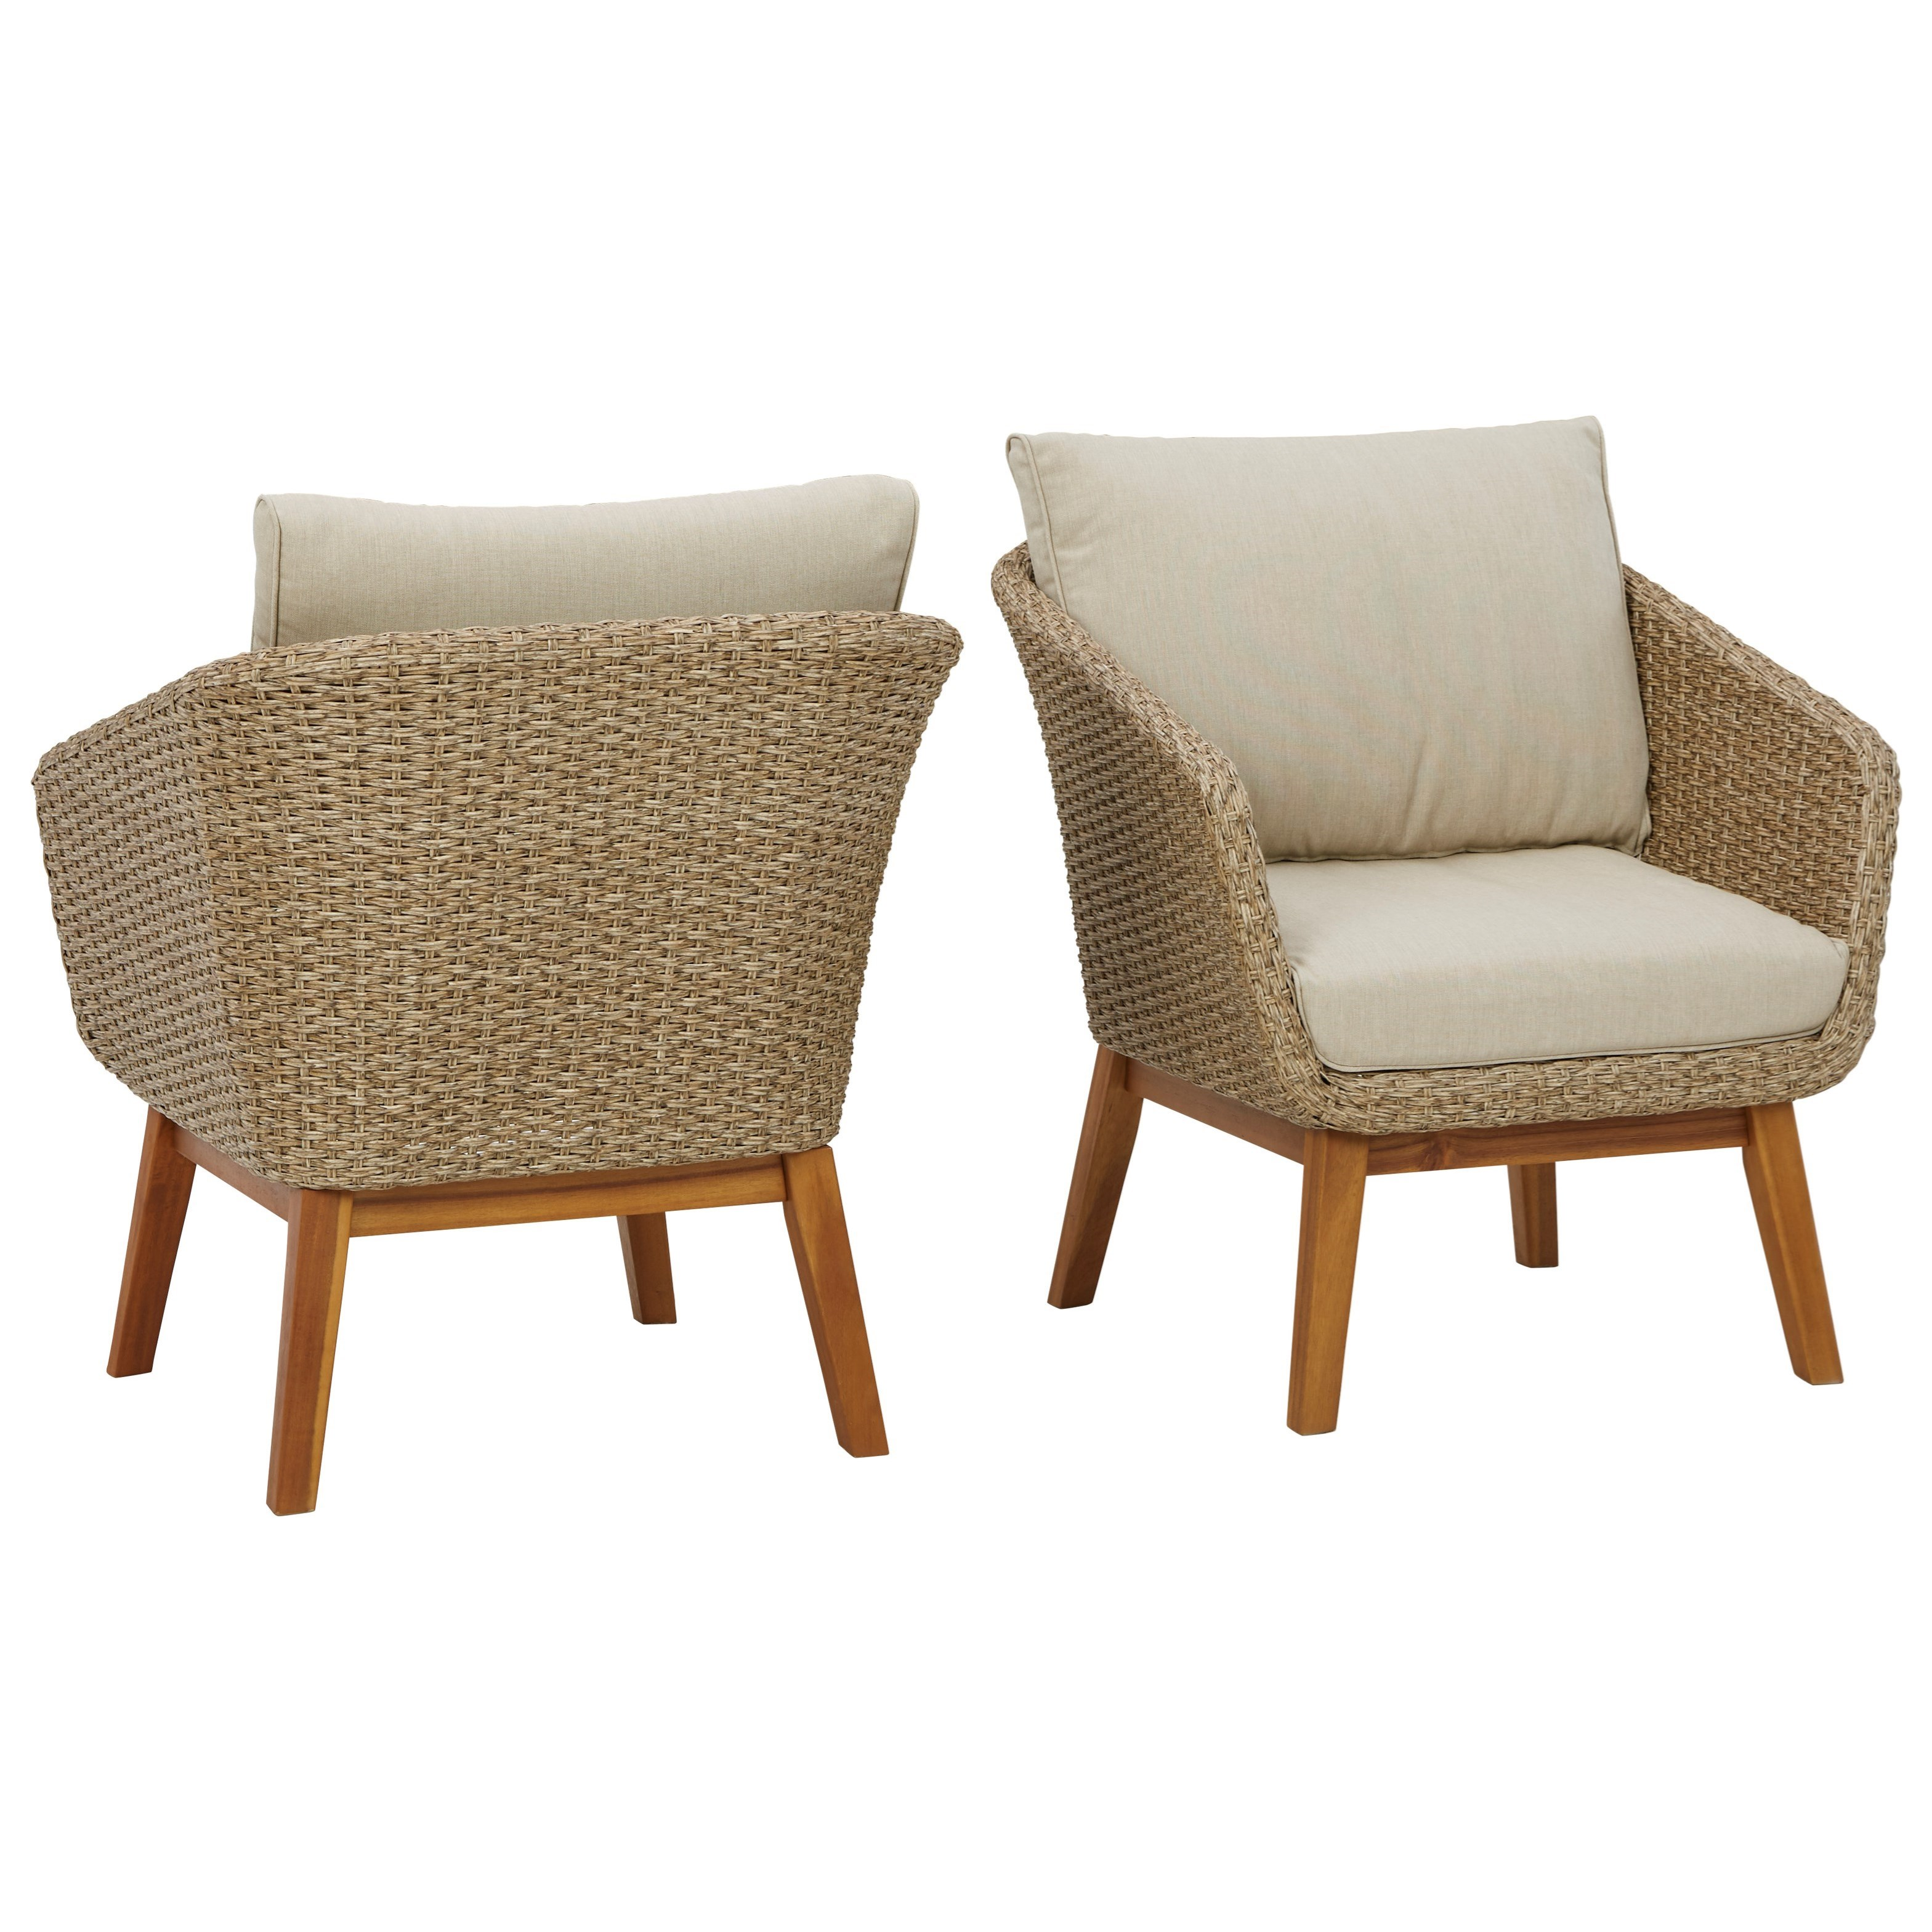 Crystal Cave Set of 2 Lounge Chairs w/ Cushion by Signature at Walker's Furniture